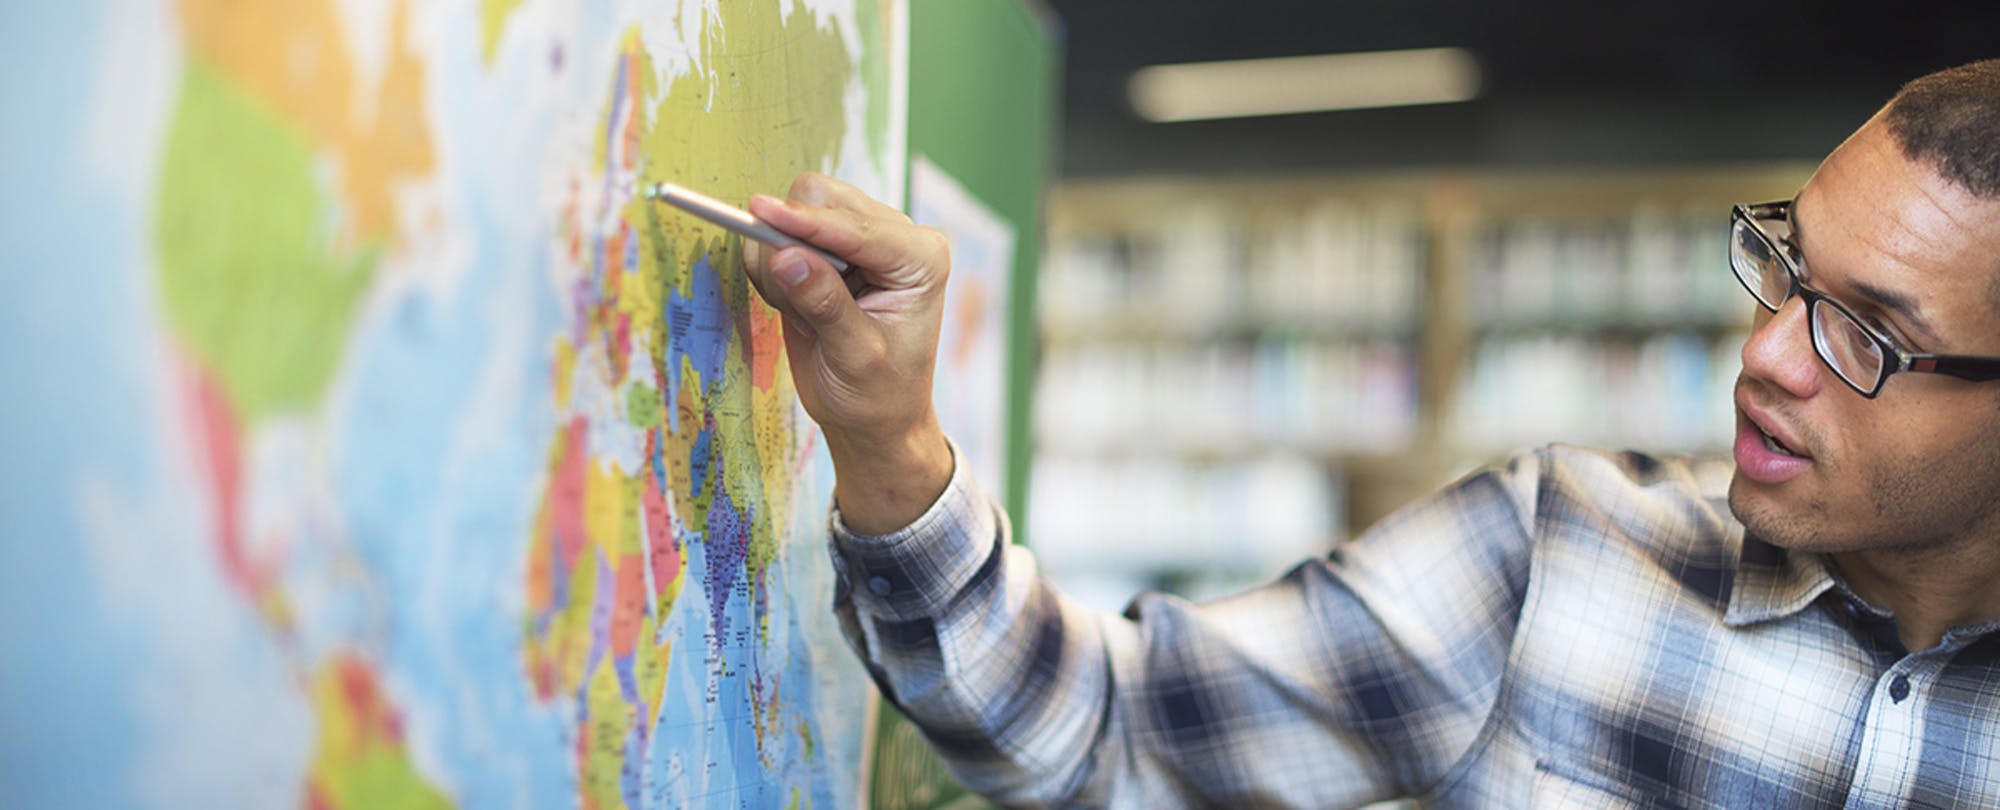 Social Studies Should Teach Students for Tomorrow, Not the Past